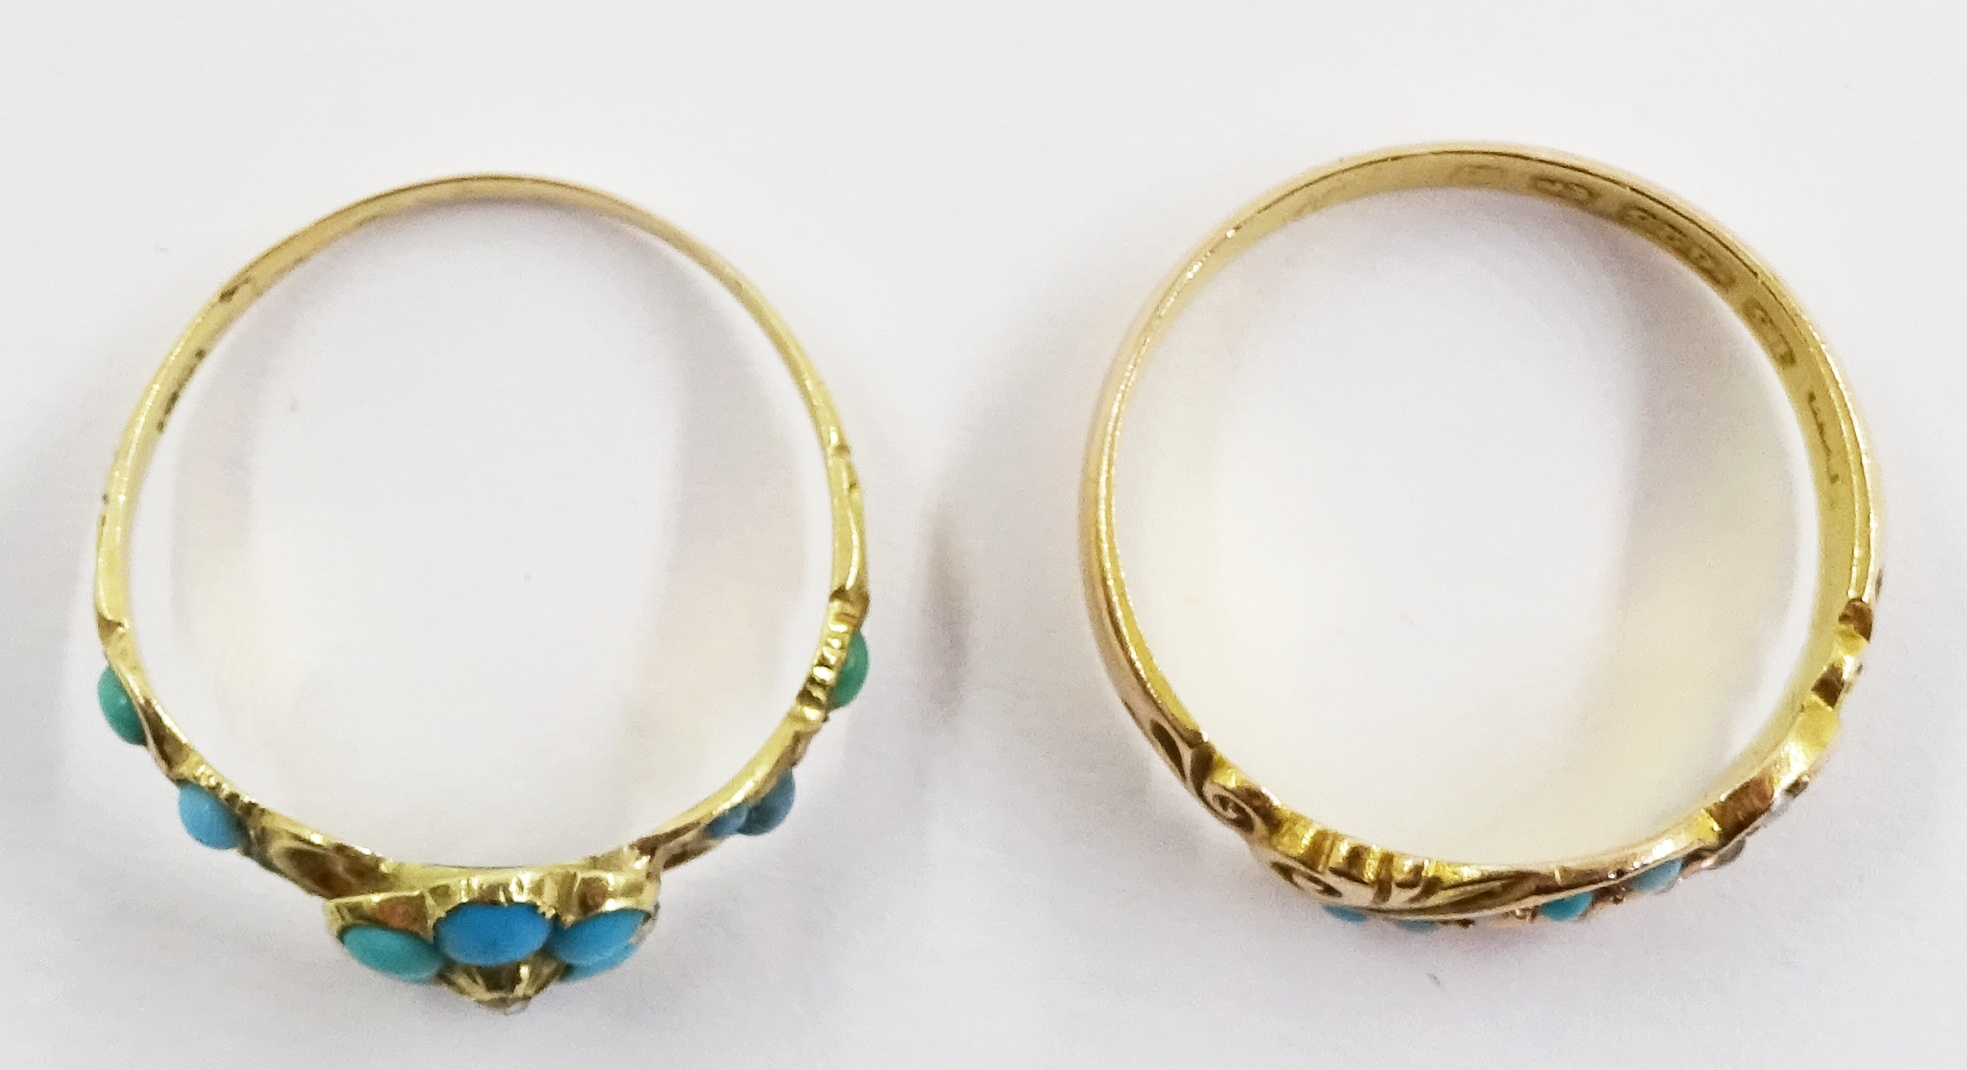 Victorian turquoise and diamond ring stamped 18ct and an Edwardian 15ct gold turquoise and spilt see - Image 4 of 5